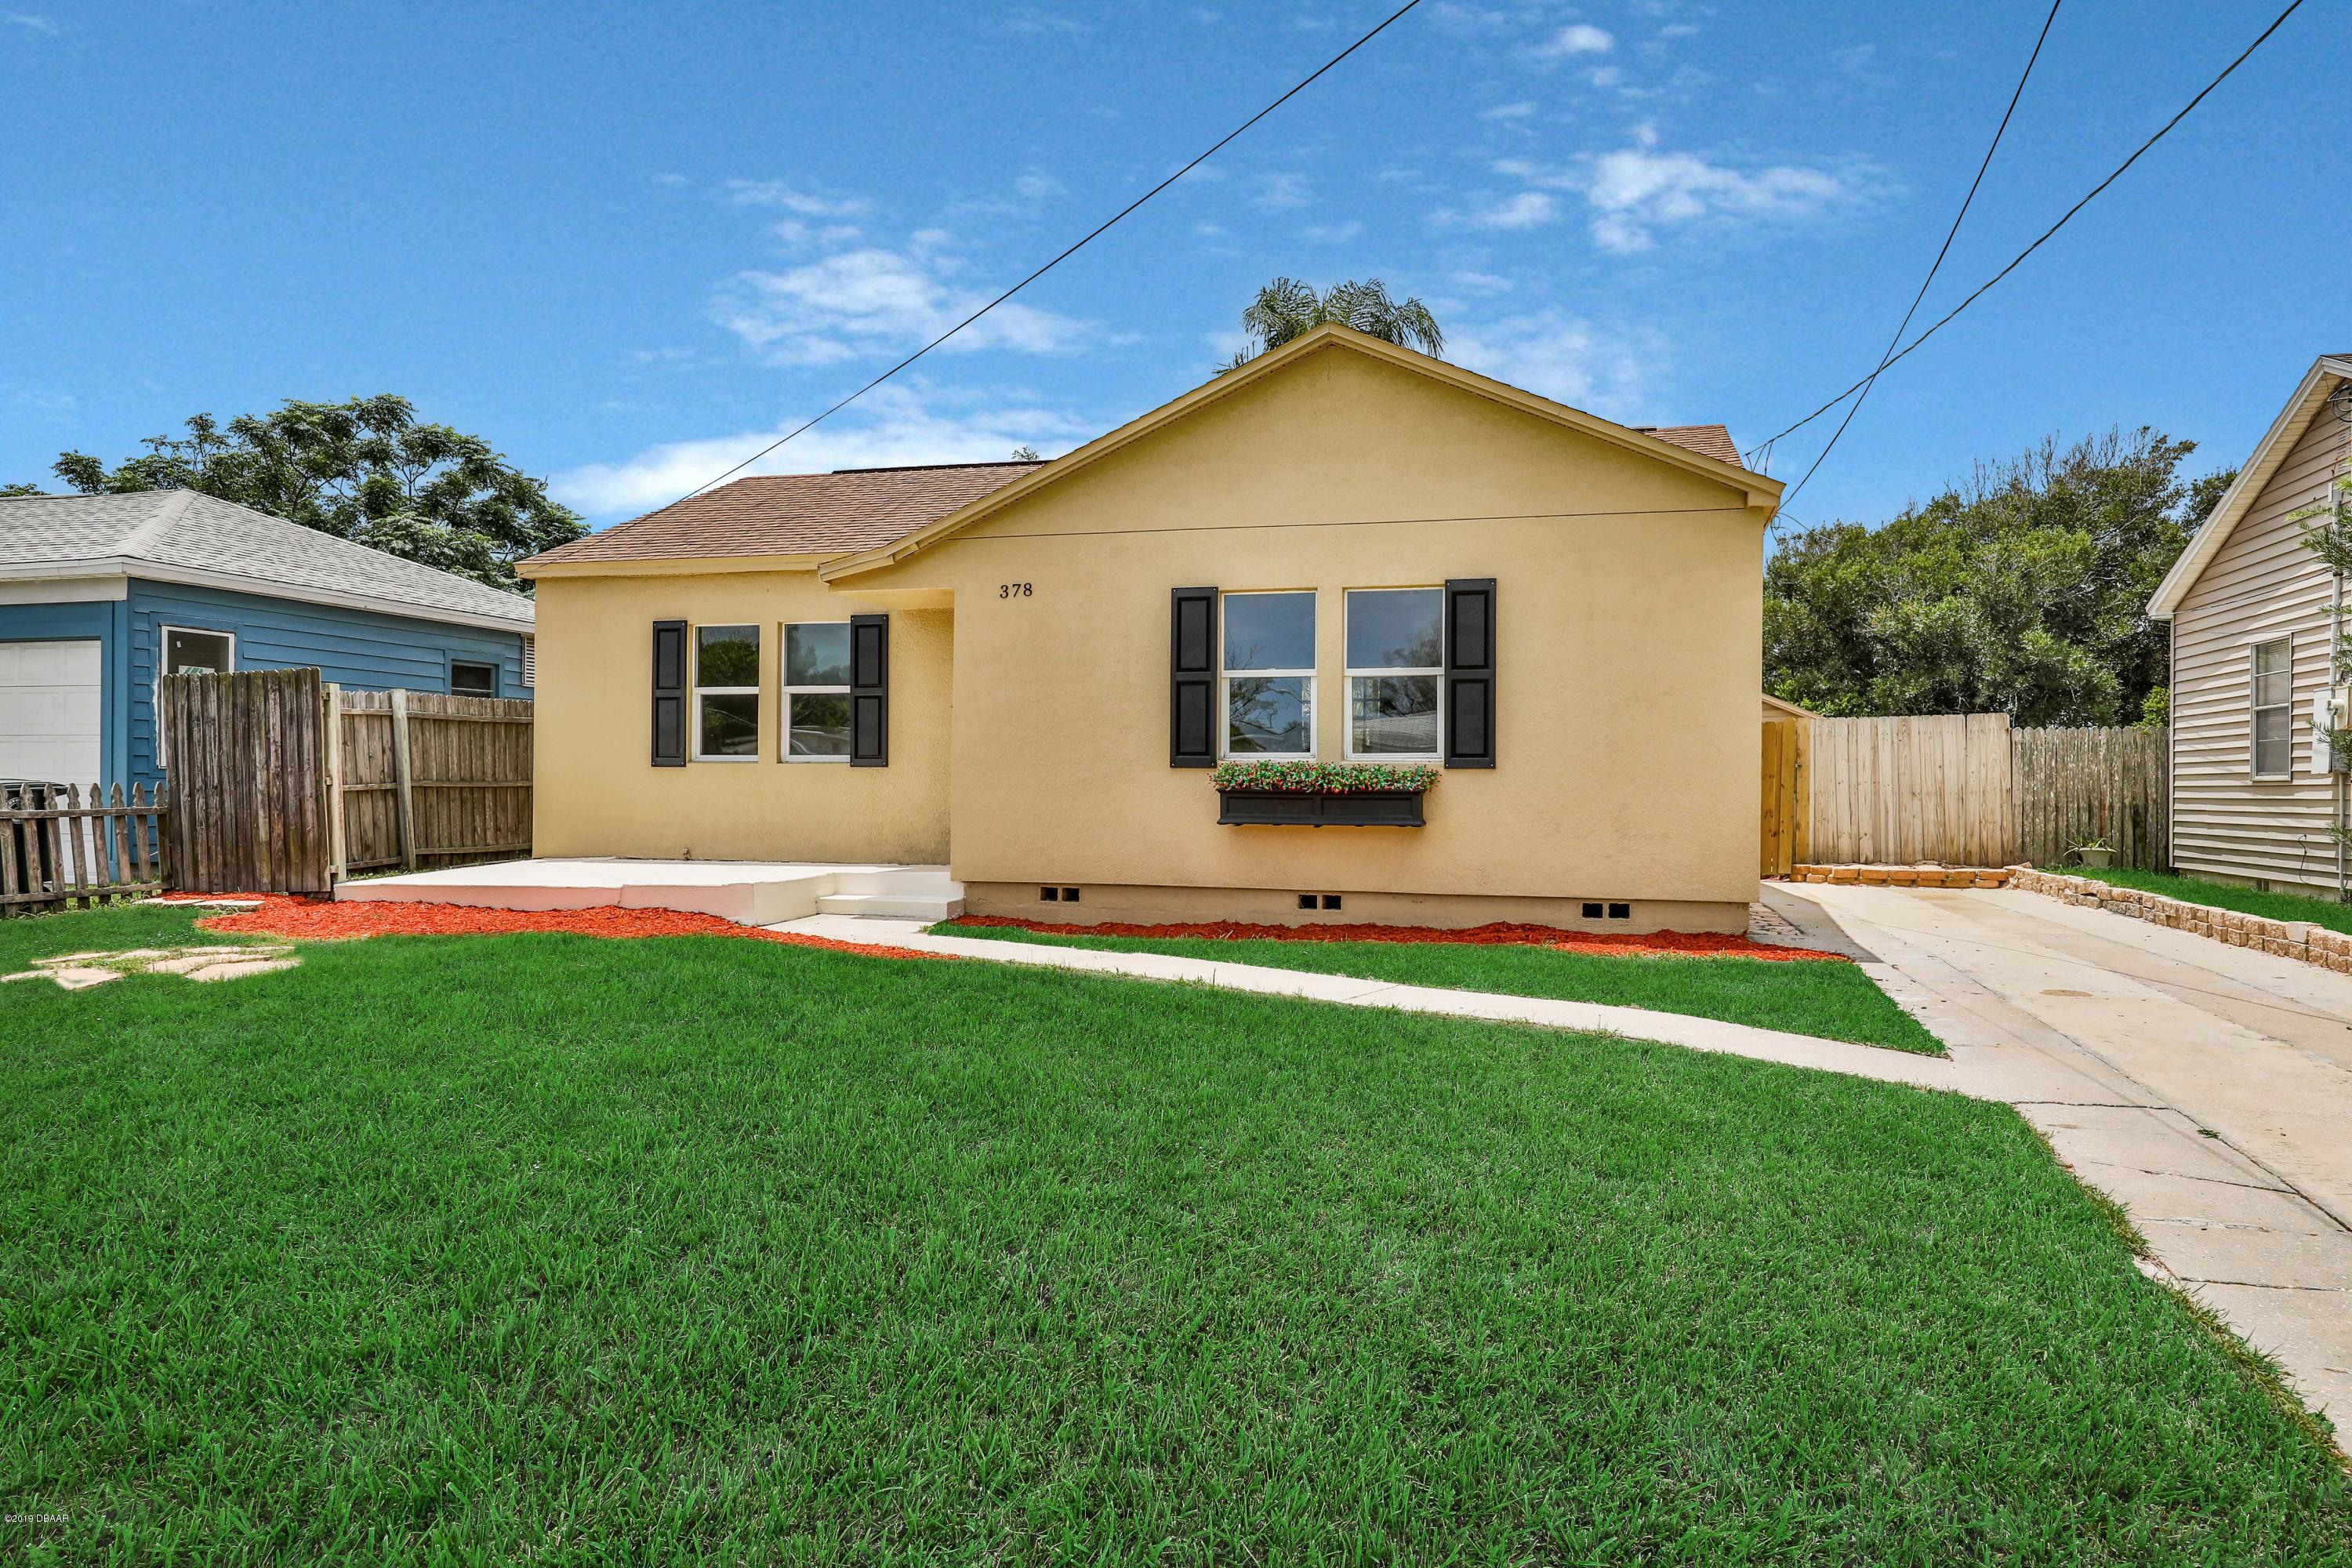 One of Daytona Beach Shores 3 Bedroom Homes for Sale at 378 Golf Boulevard